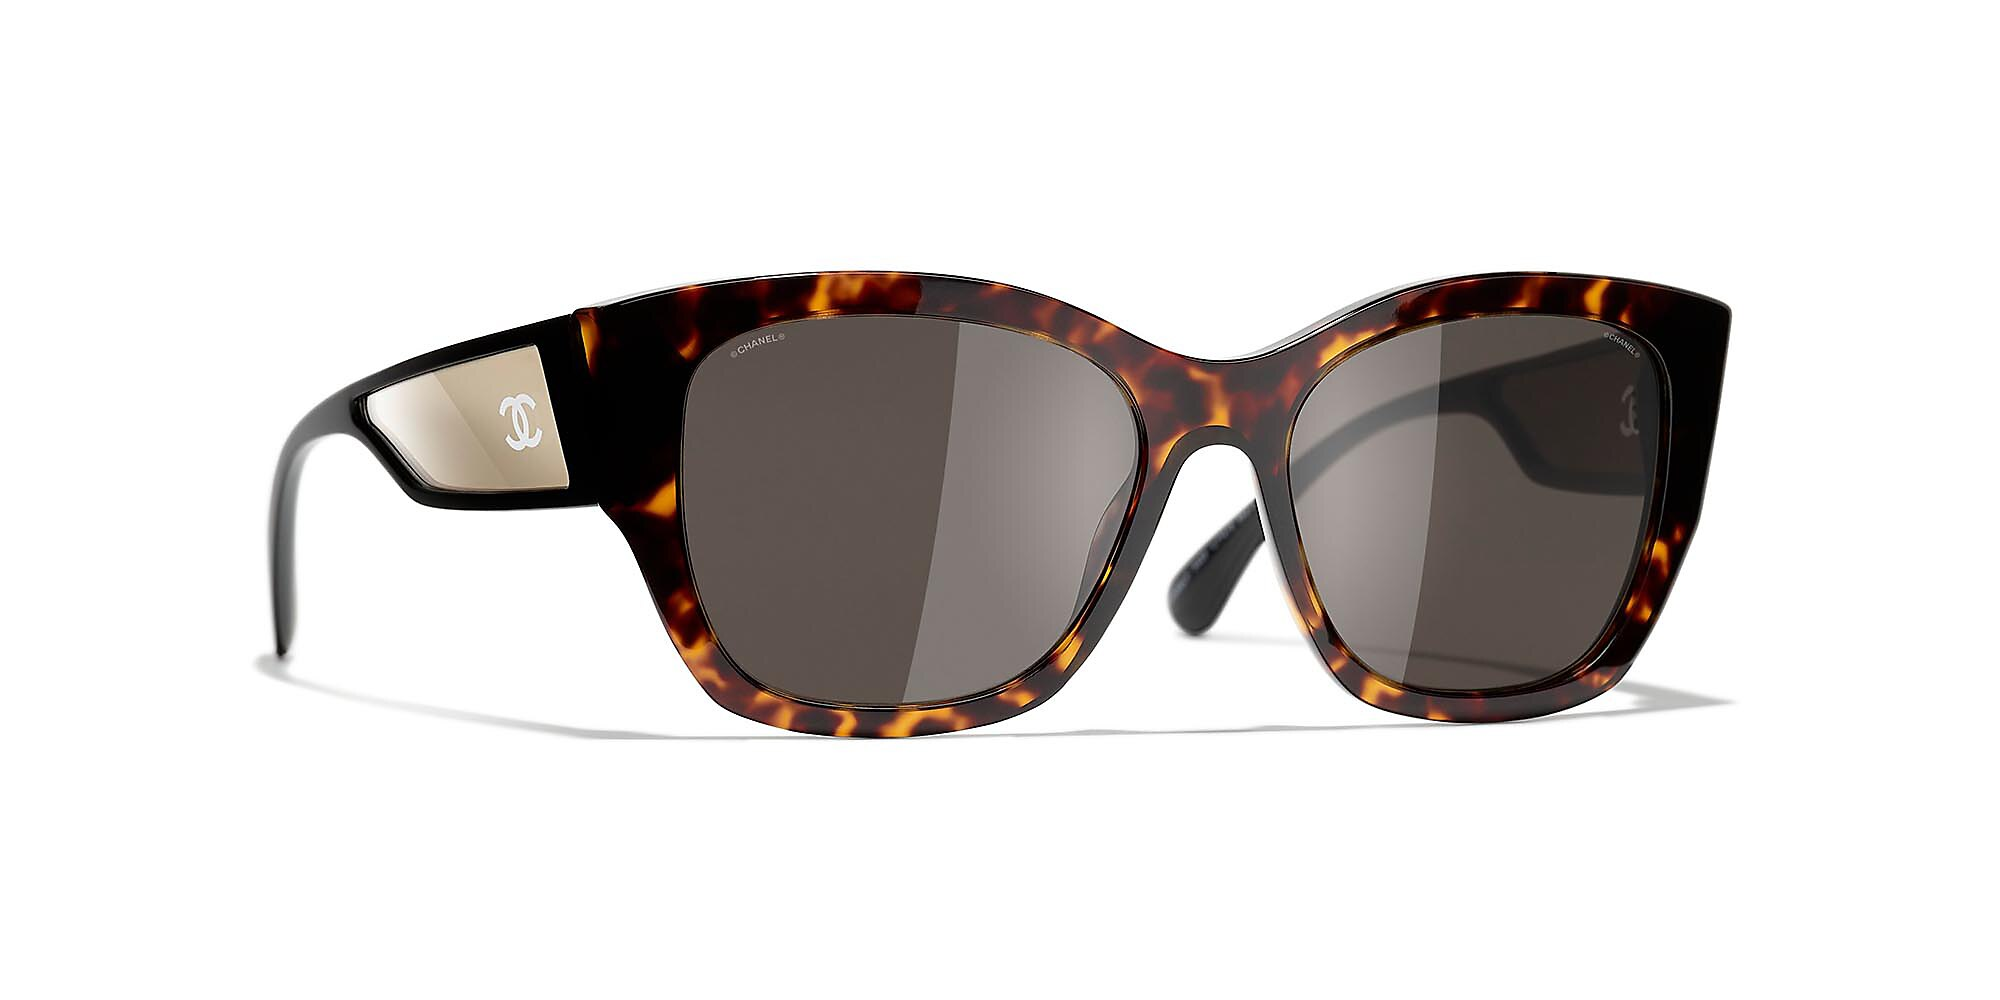 Chanel Unisex  Butterfly Sunglasses CH5429 -  Frame color: Tortuga oscuro, Lens color: Marron